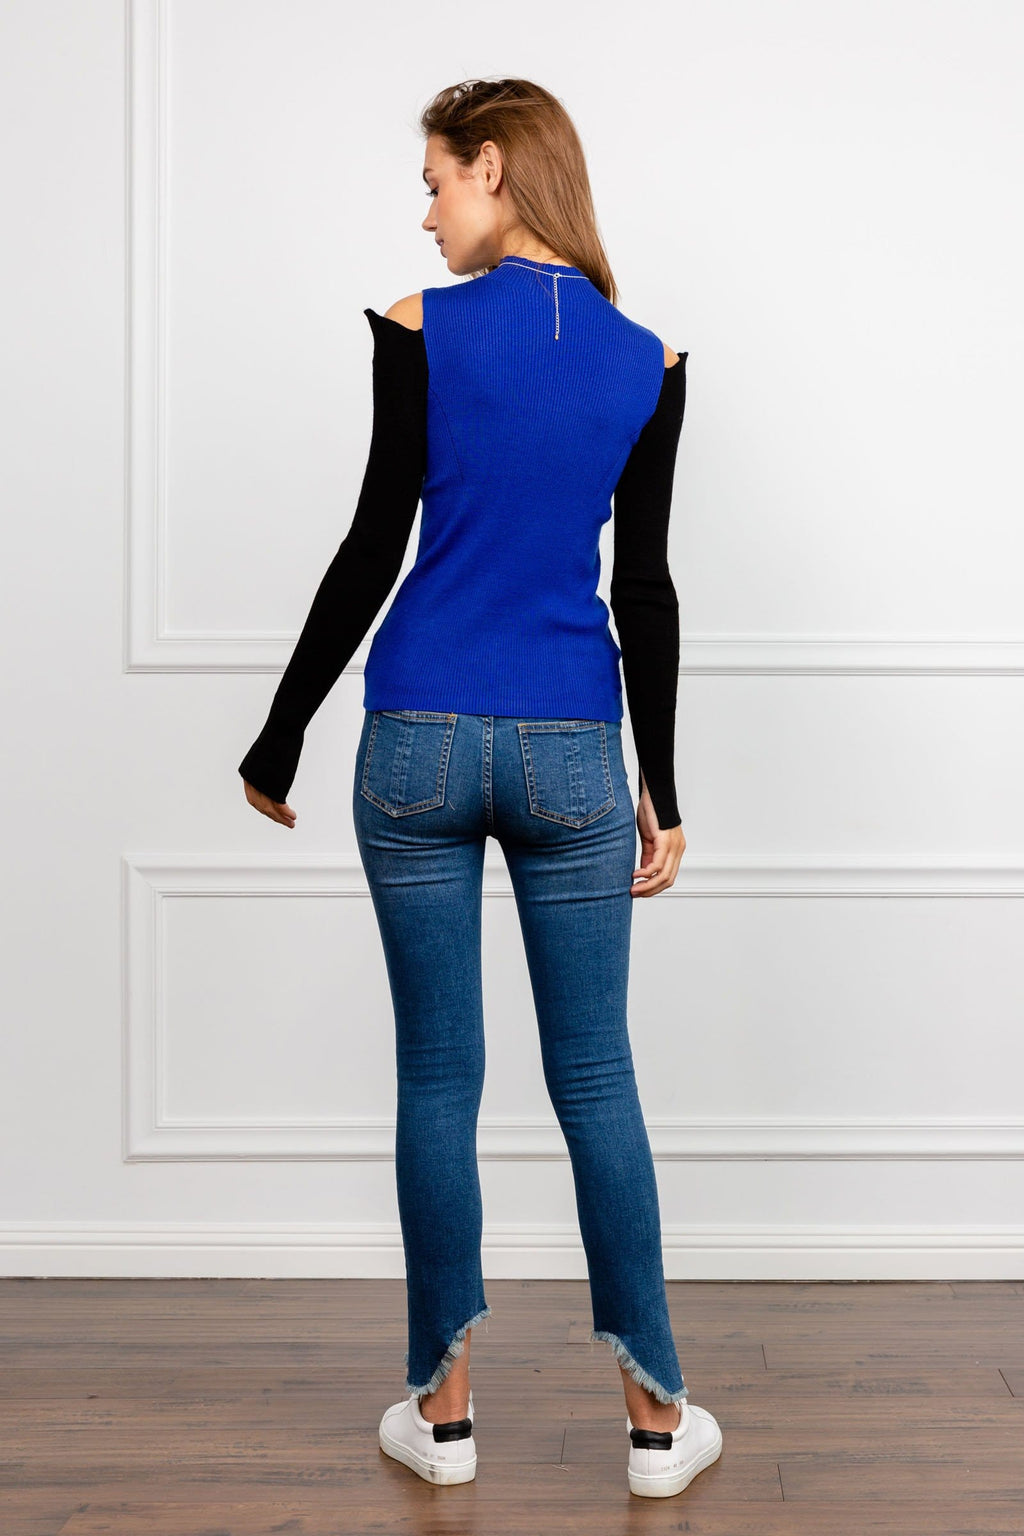 Veronia Black and Blue Cold Shoulder Sweater